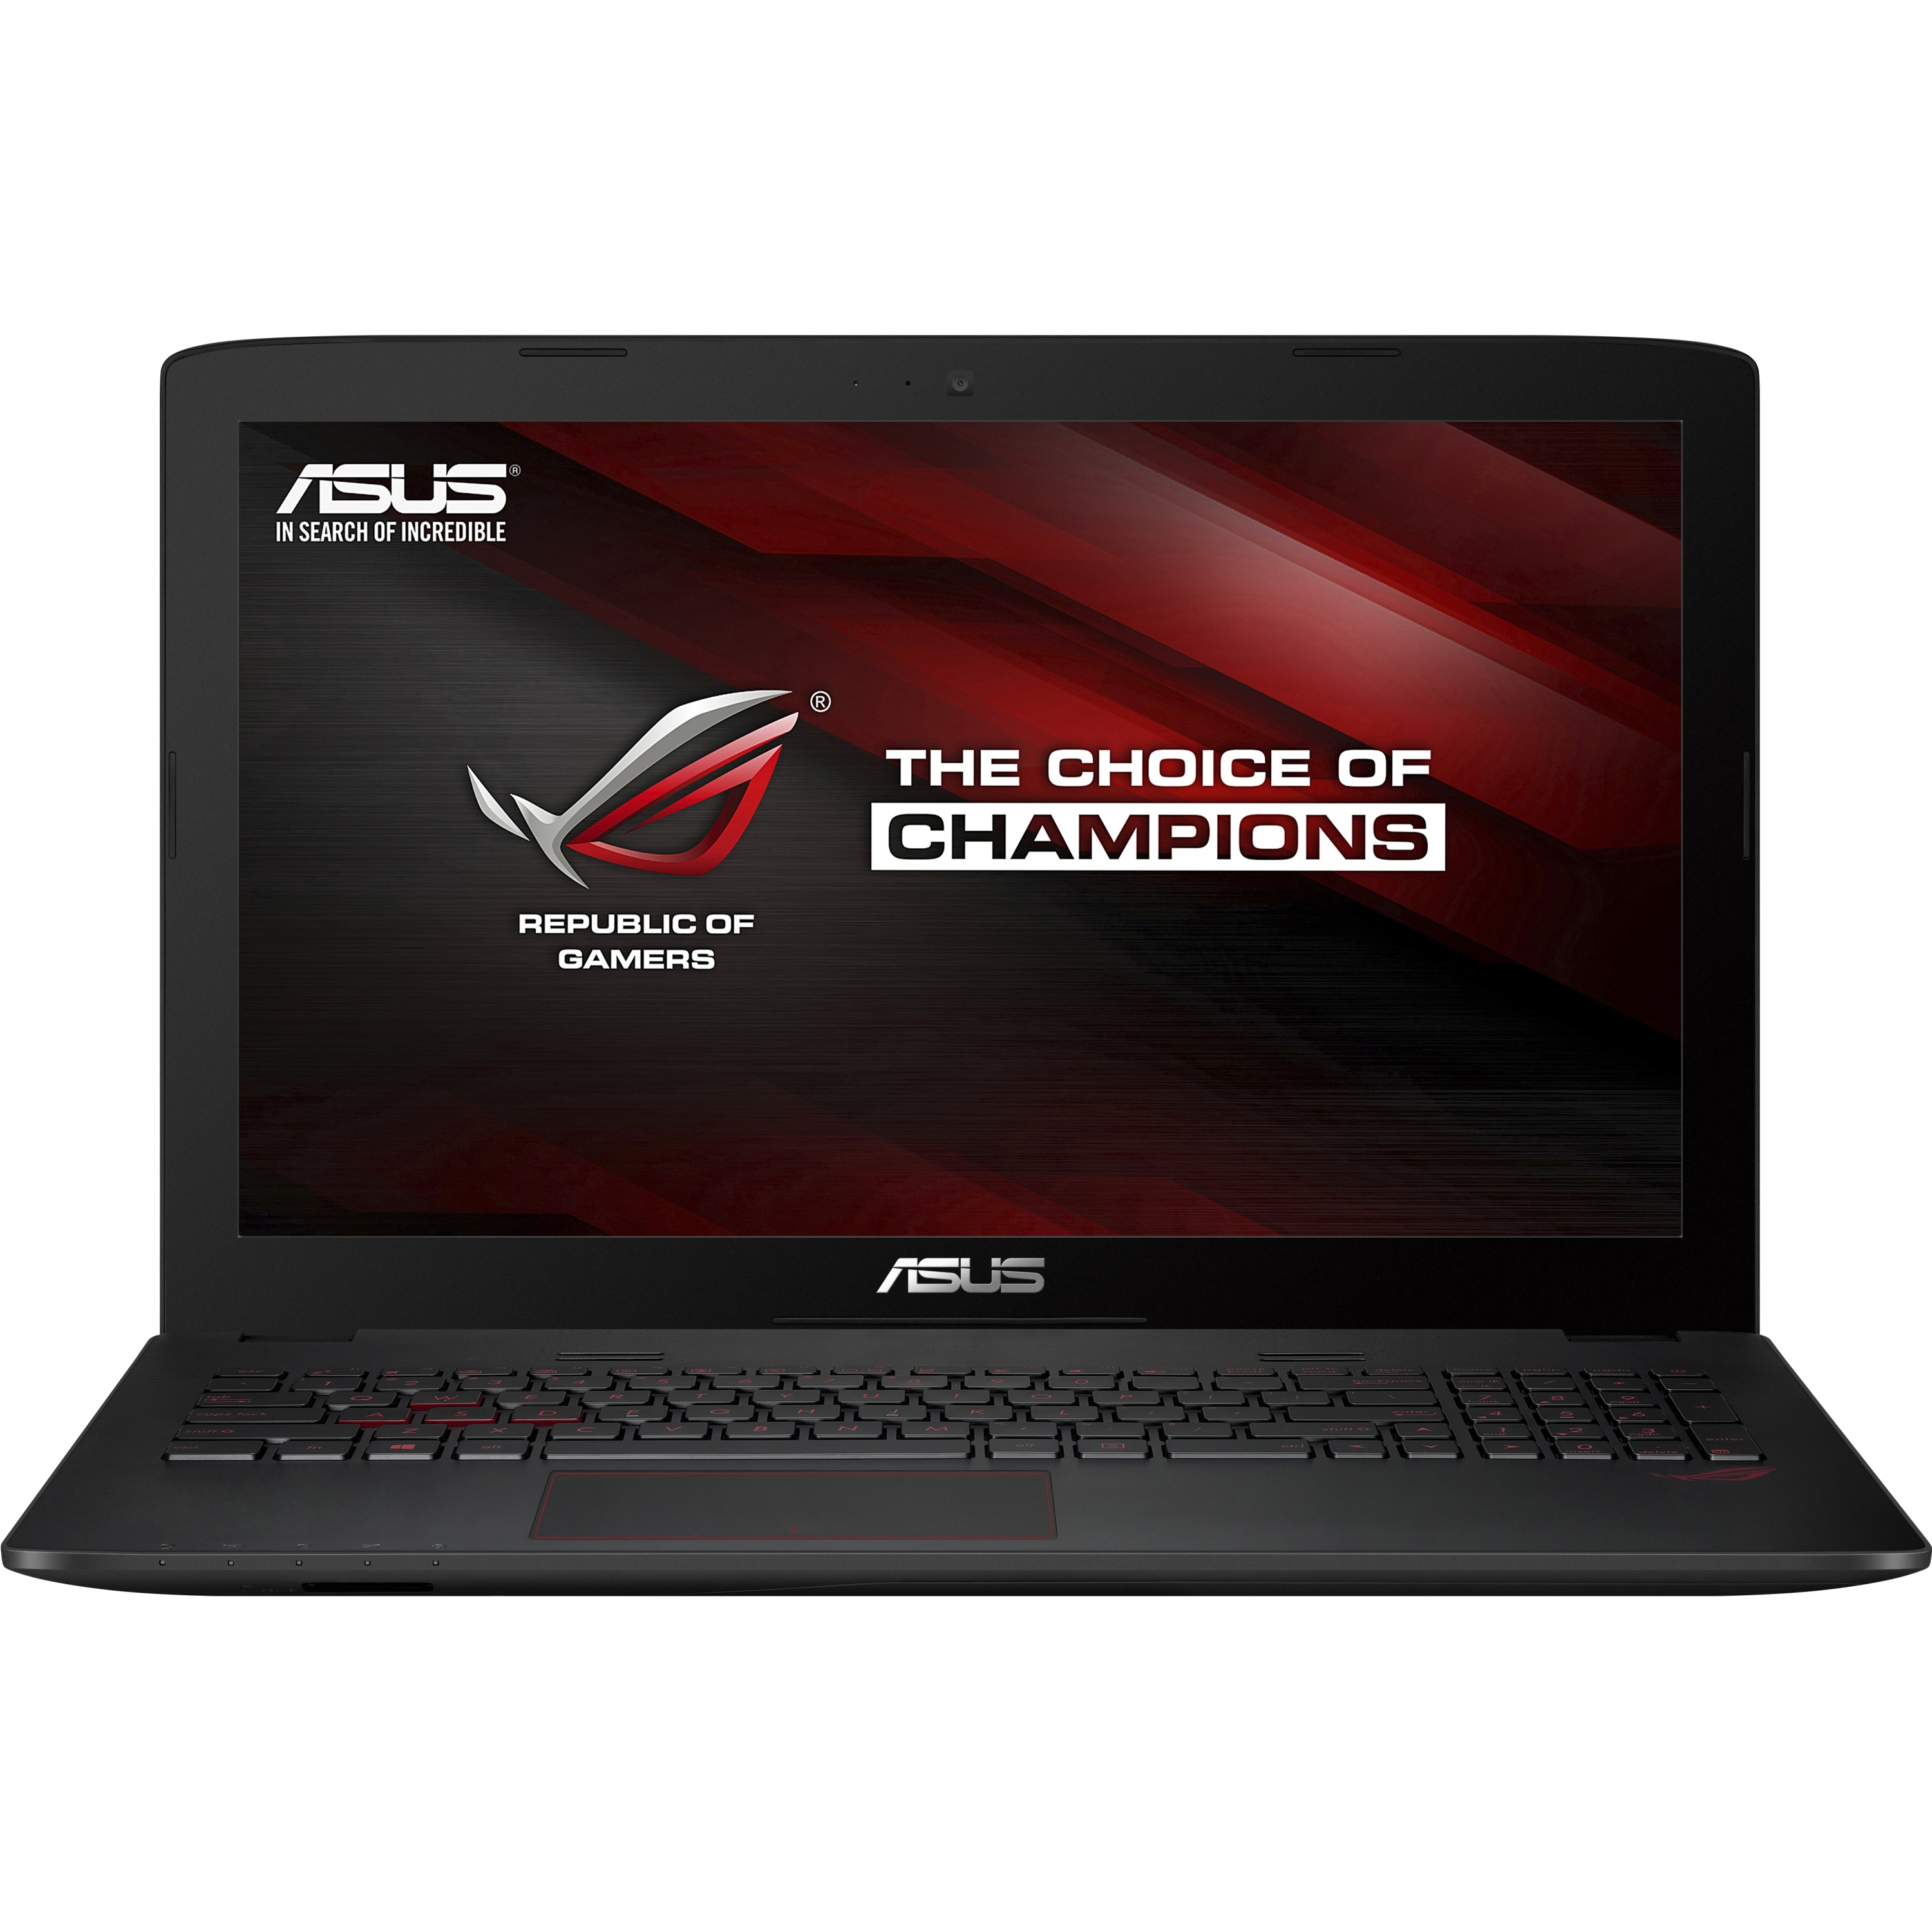 "ROG GL552VW-DH71 15.6"" 16:9 Notebook - 1920 x 1080 - In-plane Switchi"